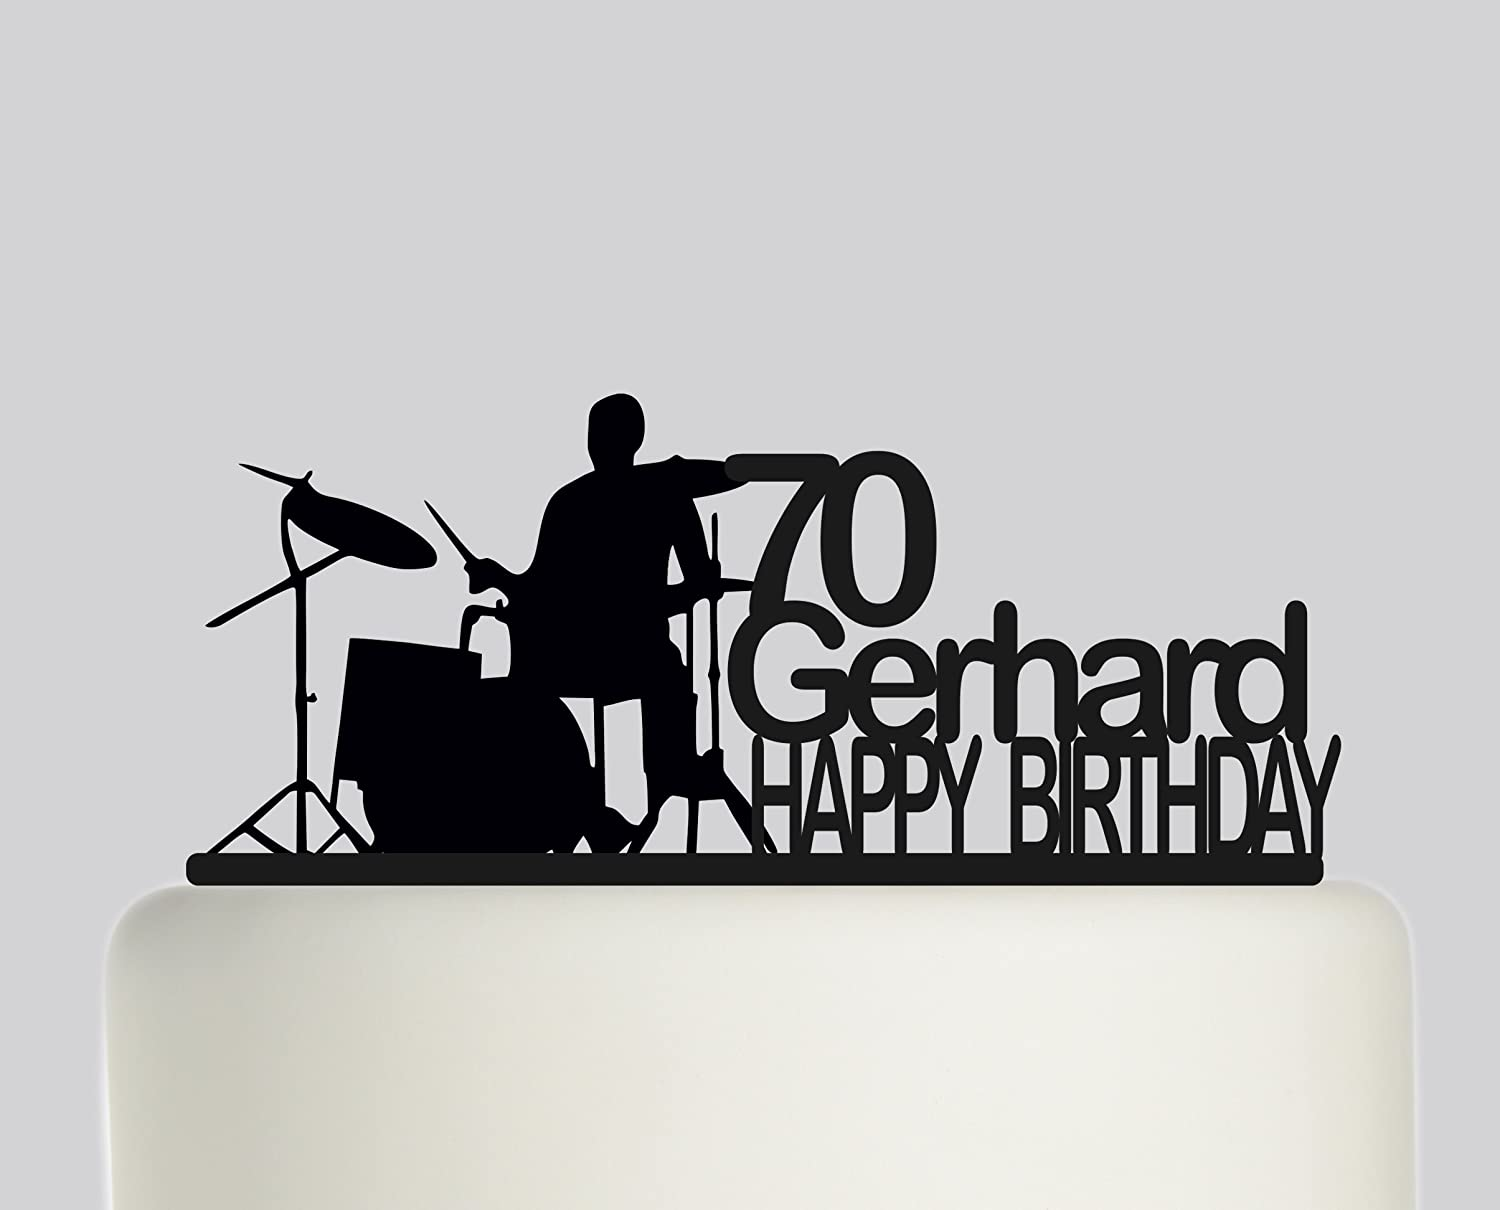 Birthday Cake topper Personalised Drum Drummer Drumming Happy Birthday YOUR NAME And AGE. Ideal birthday cake decoration, birthday party Acrylic cake topper, Available in Gold Mirror, Gold Sparkle, Silver Mirror, Silver Sparkle, Bronze Mirror, Black,Blue,